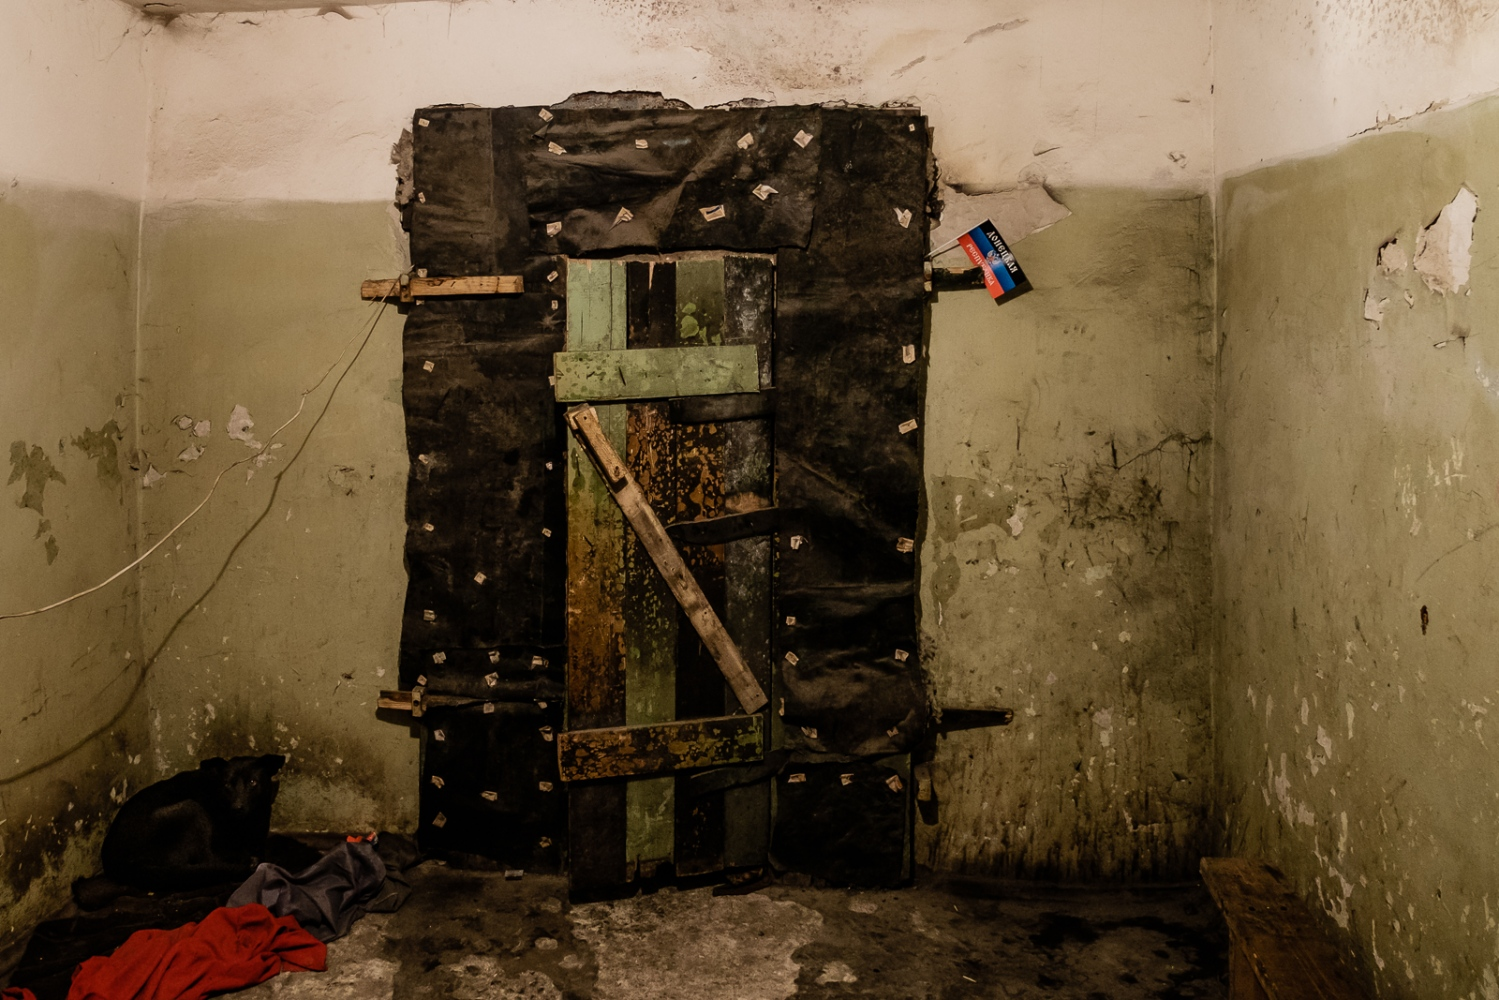 Art and Documentary Photography - Loading My_life_is_a_bunker-5.jpg